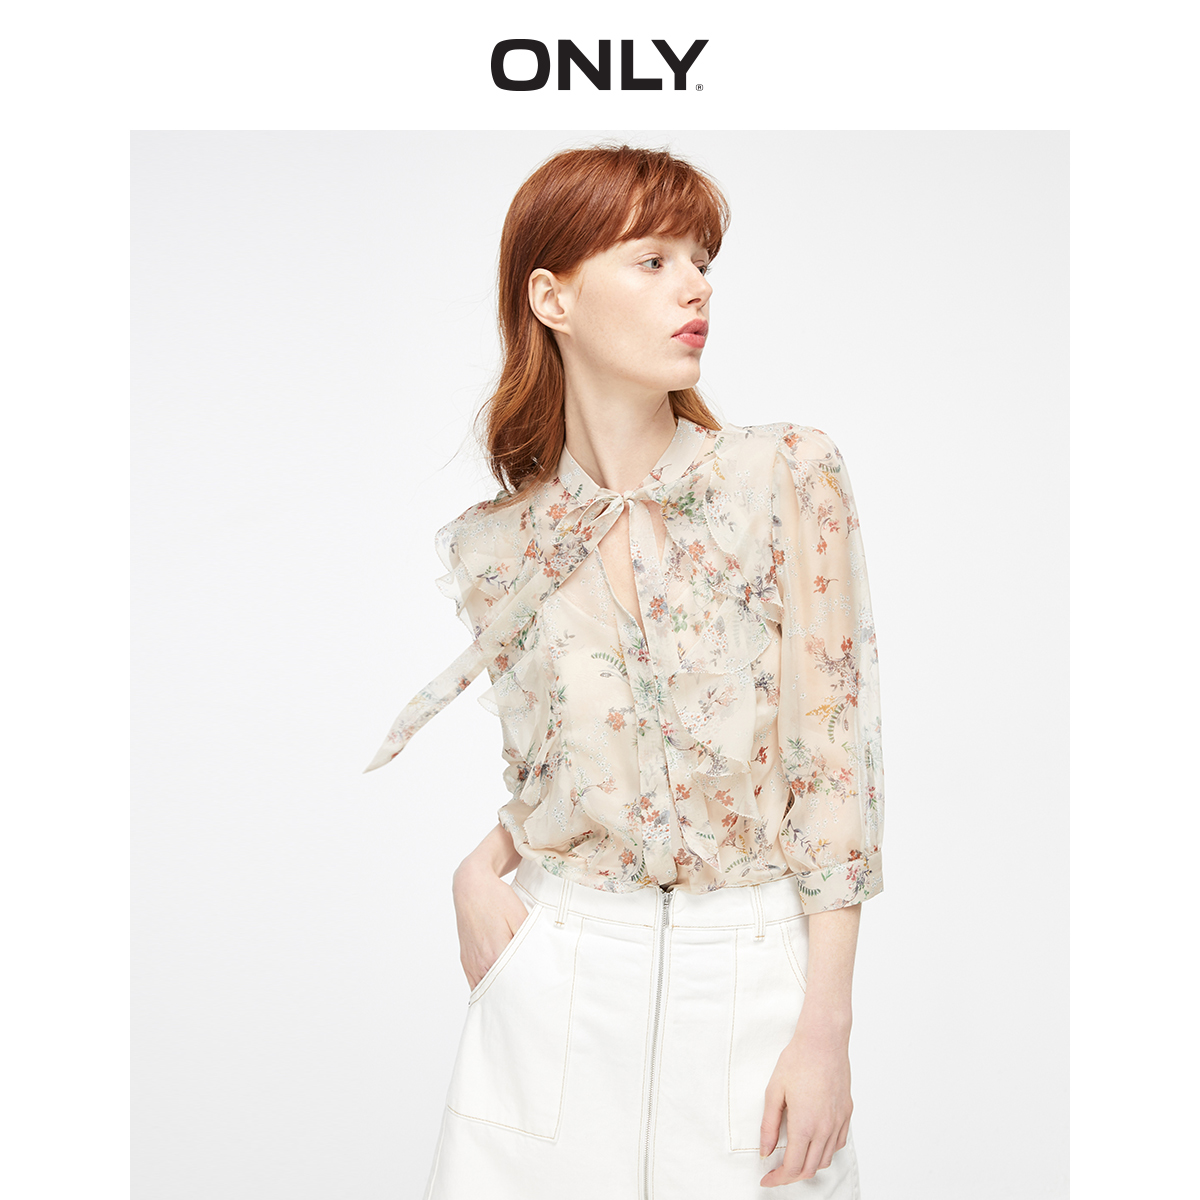 ONLY  Loose Fit Lace-up V-neckline Floral Ruffled Chiffon Shirt | 119305501